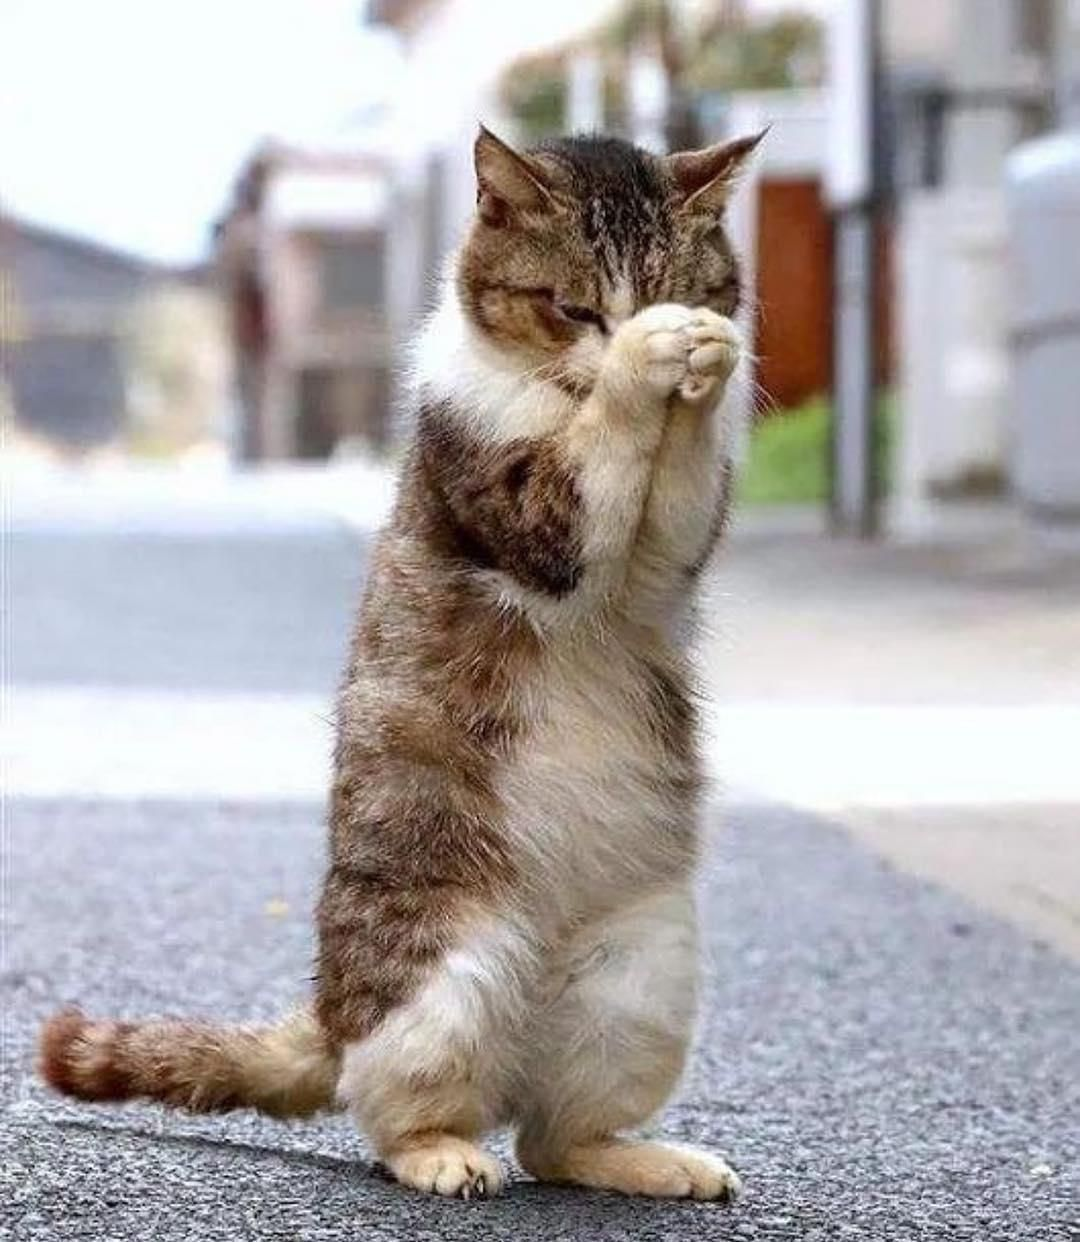 Pin by CHARMAINE on CatsStandingUp Cute animals, Cats